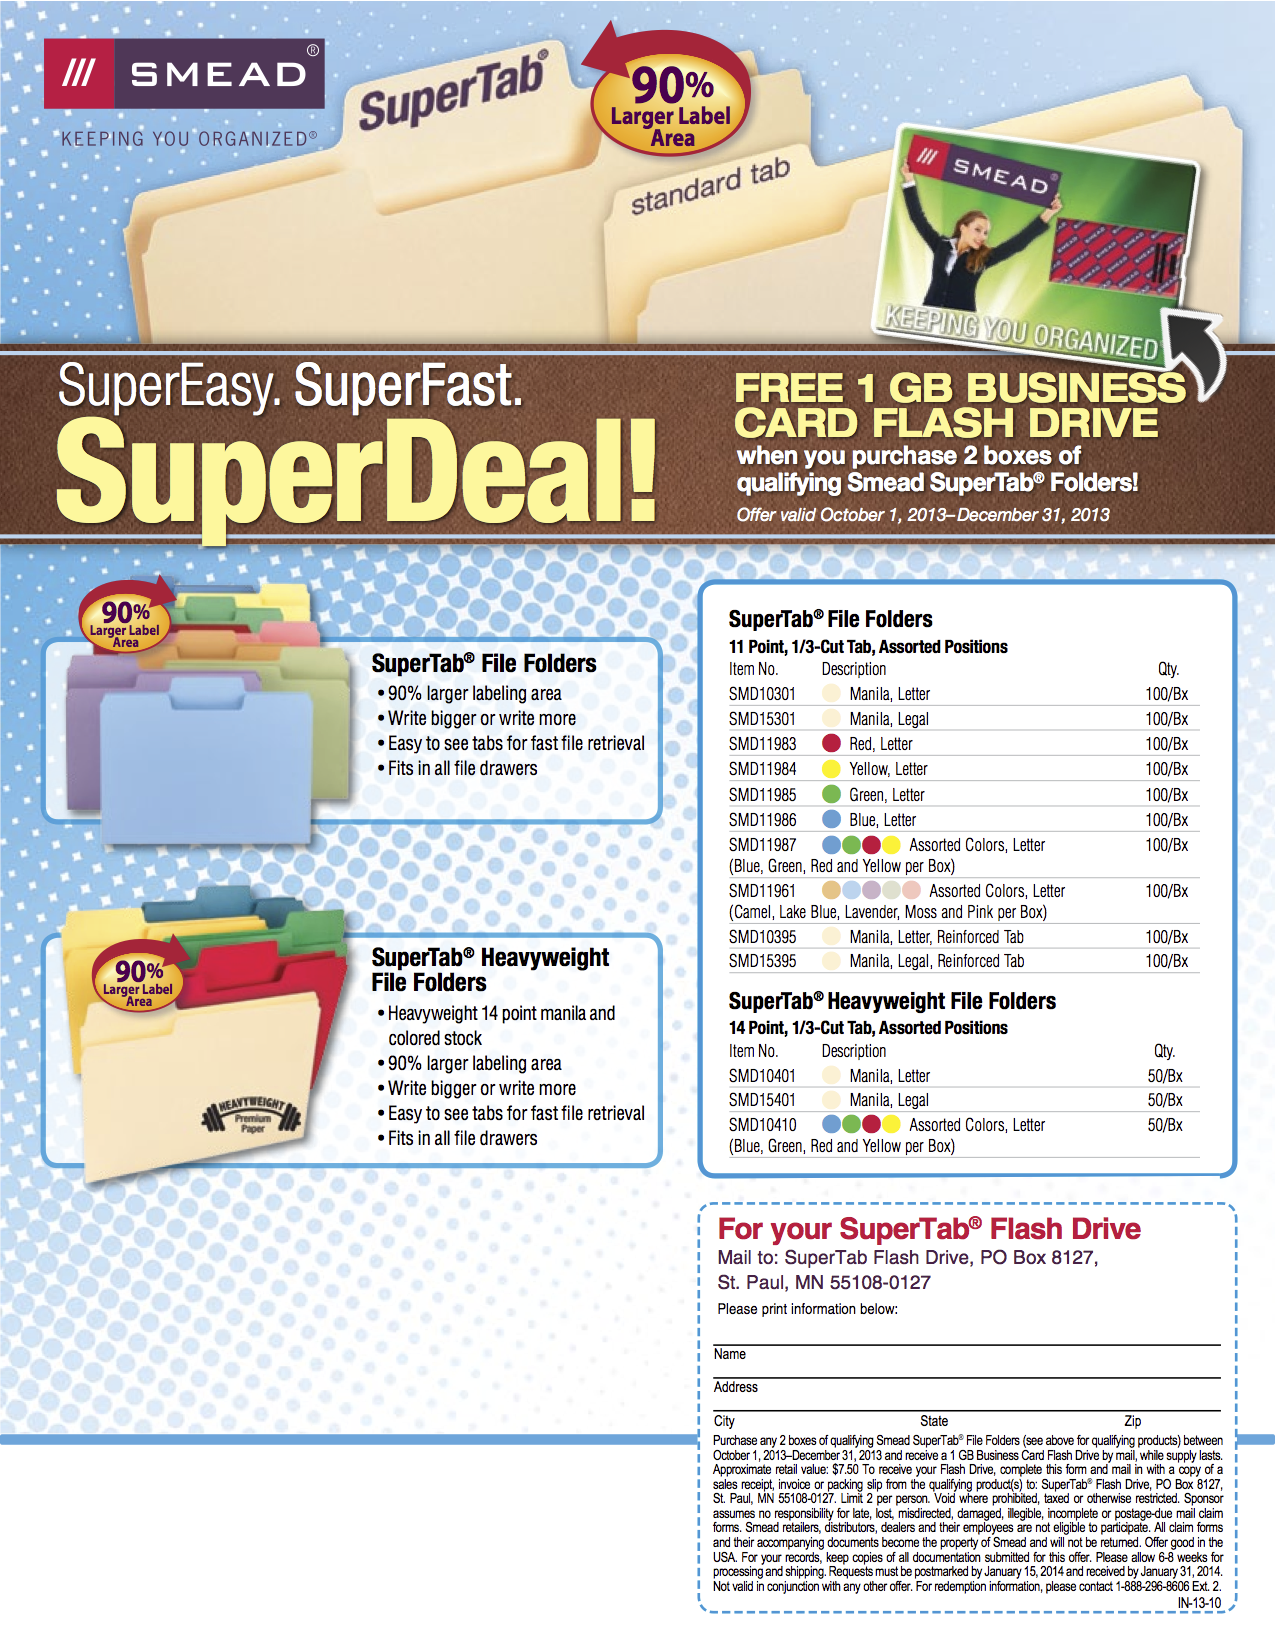 Supereasy superfast superdeal free 1 gb business card flash free 1 gb business card flash drive when you magicingreecefo Gallery